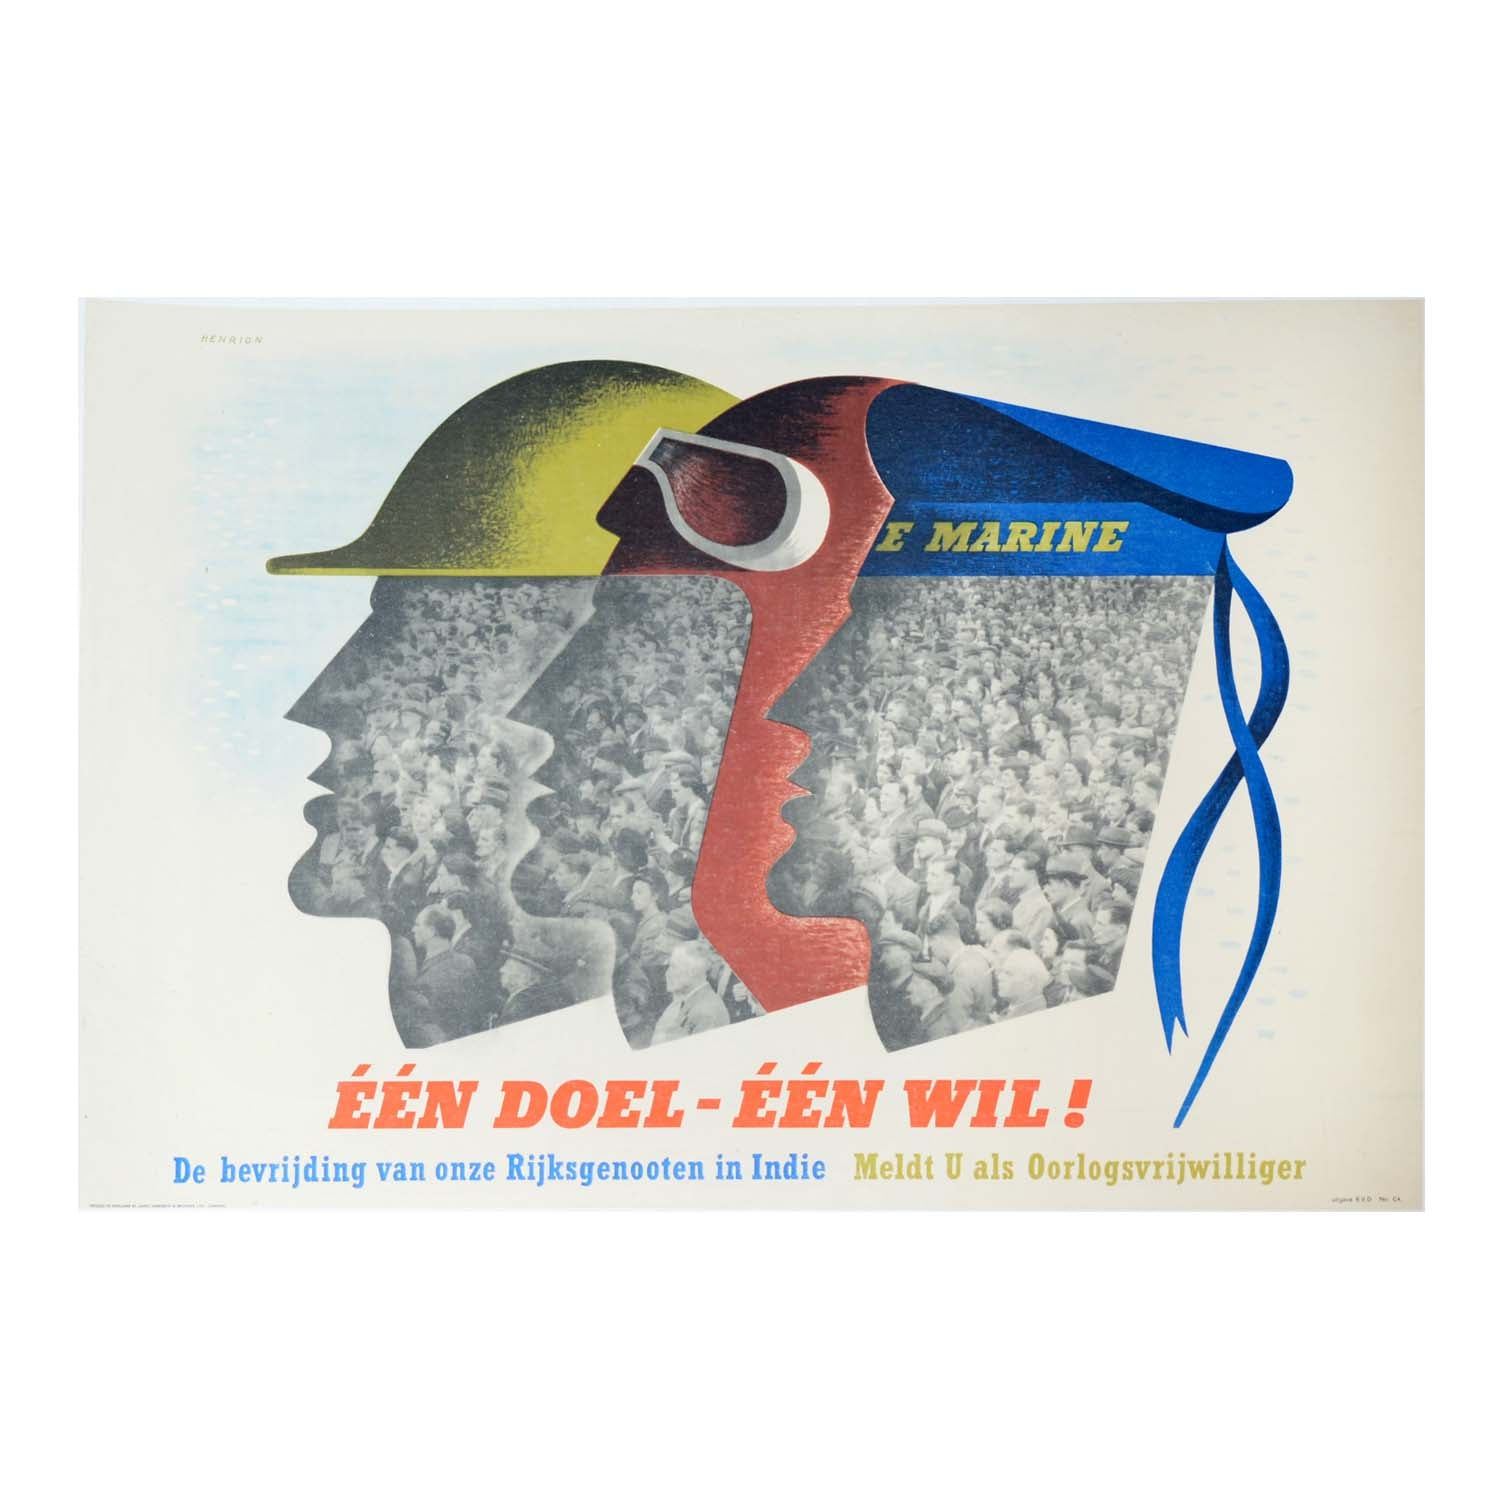 Original Second World War Dutch Government poster One Aim - One Will ! (Een Doel - Een Wil !)